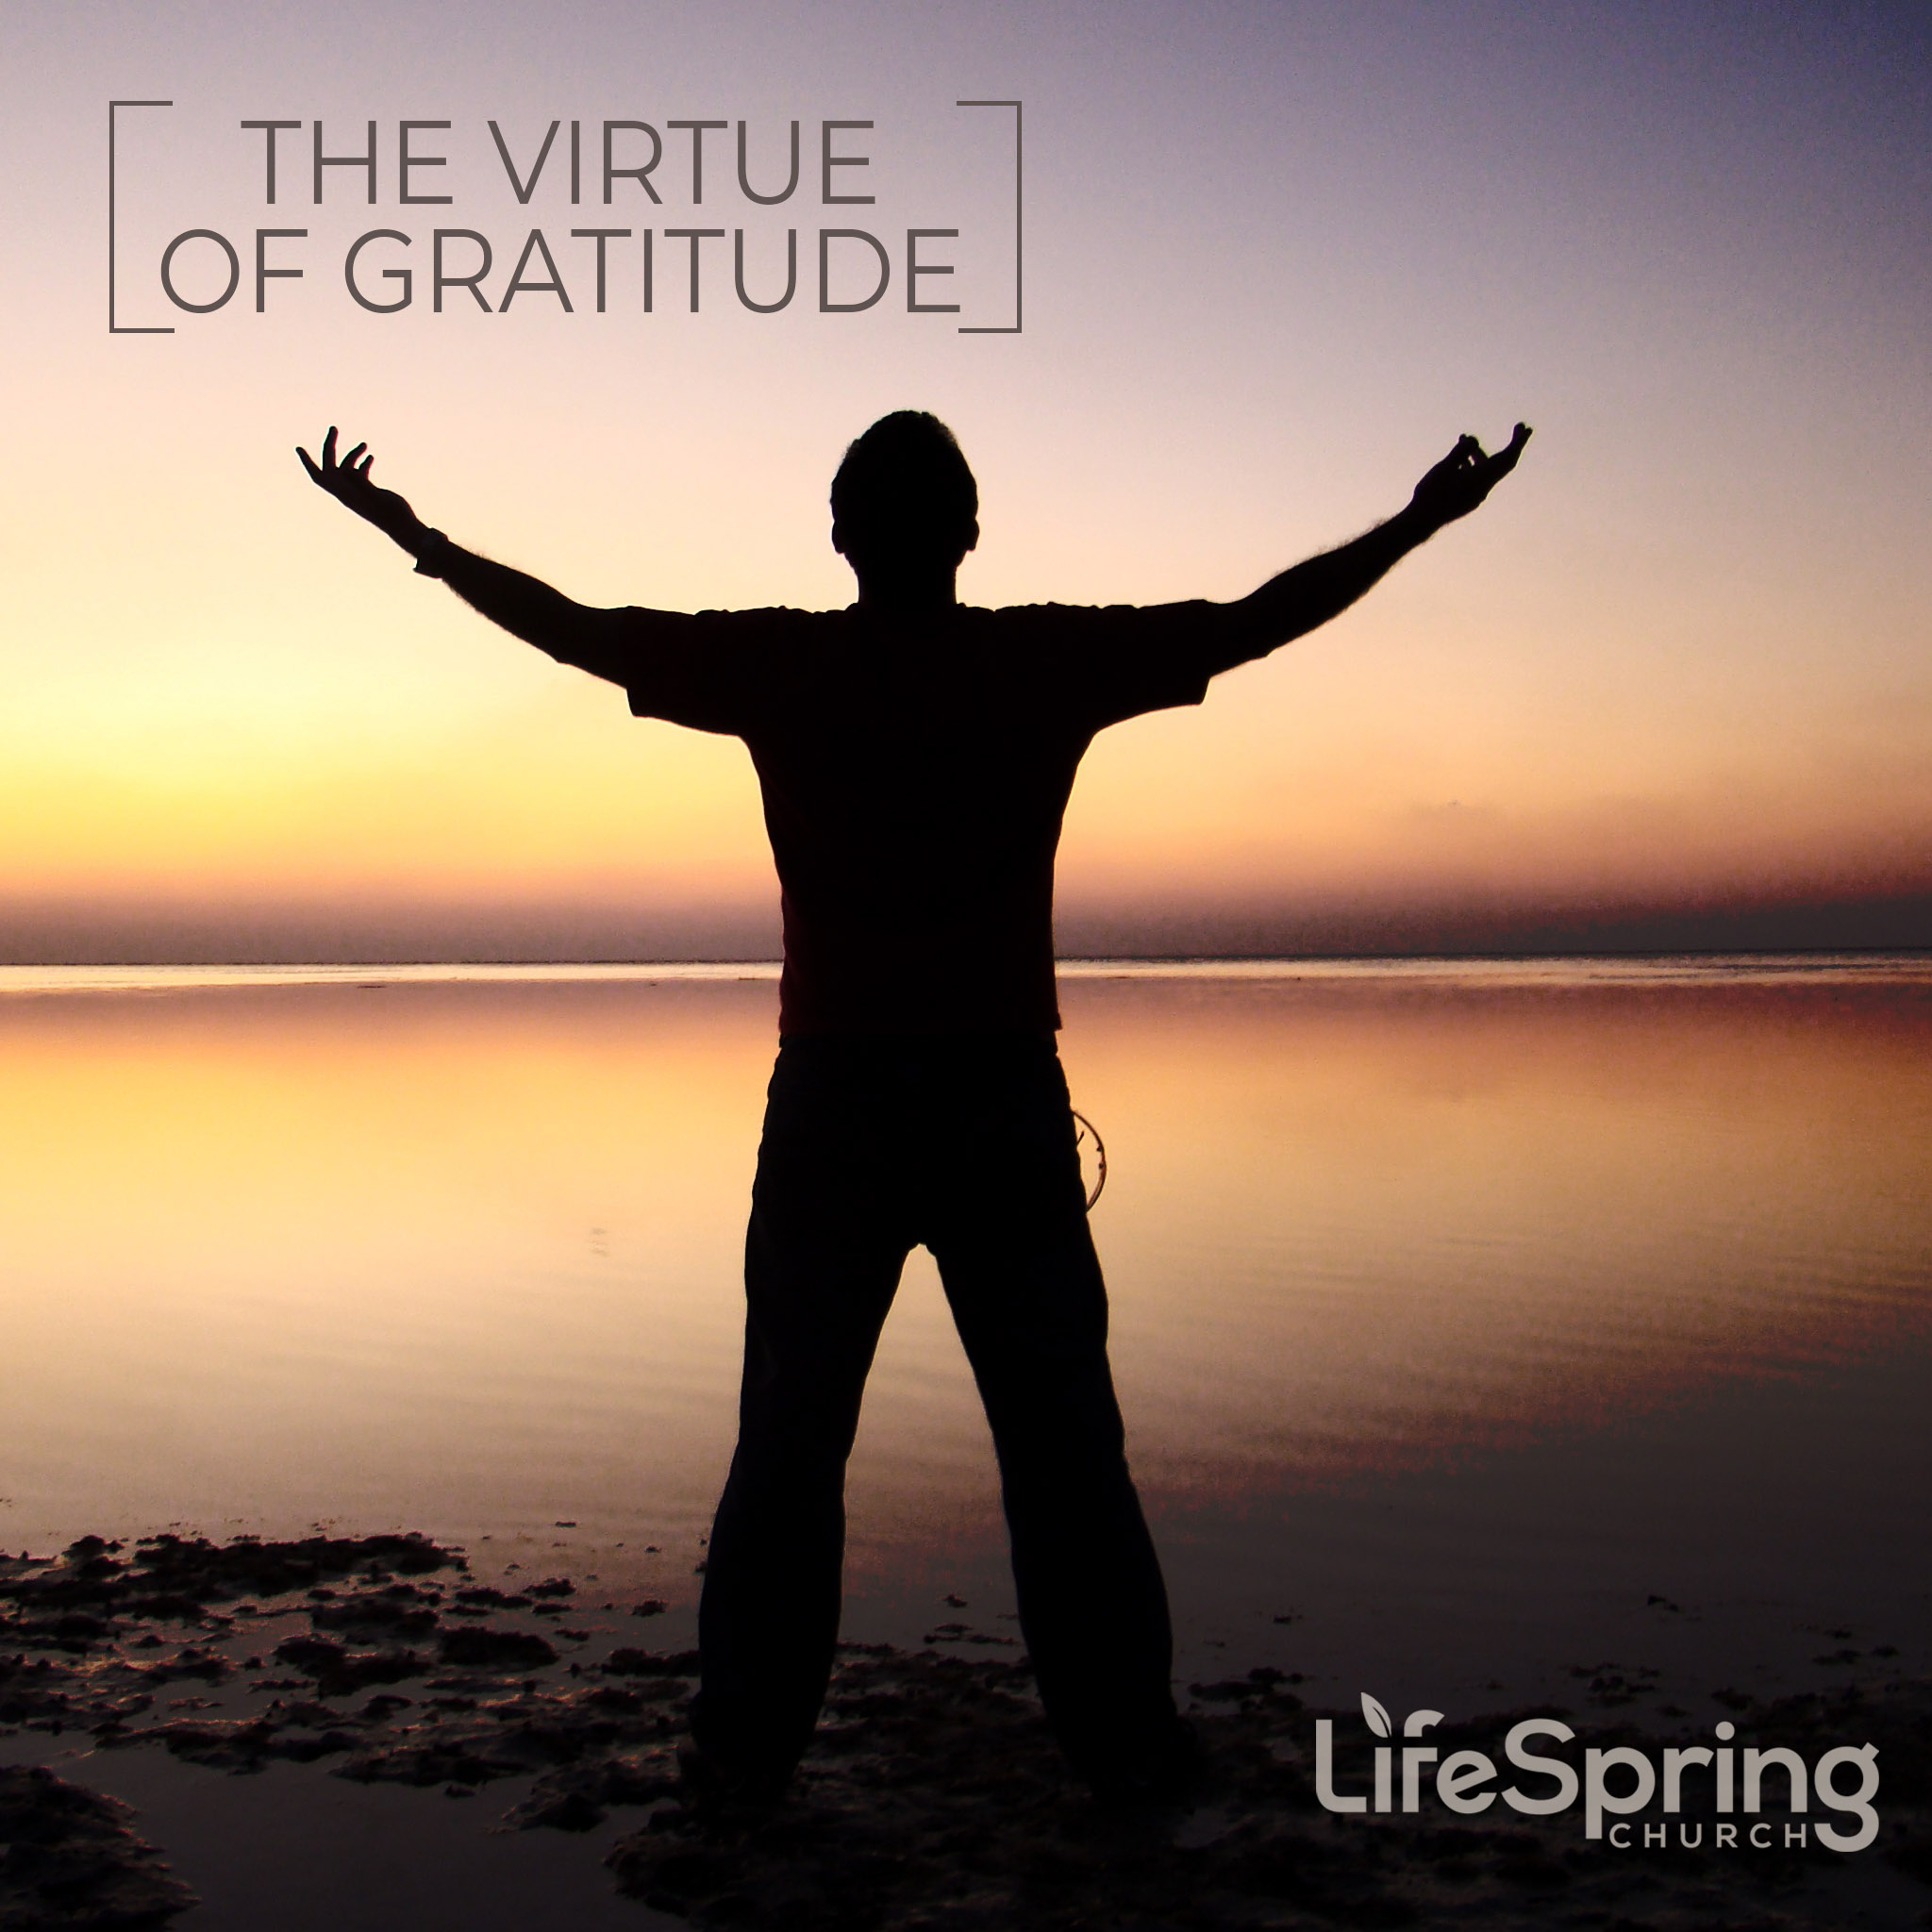 2020-04-09-blog-The_Virtue_of_Gratitude